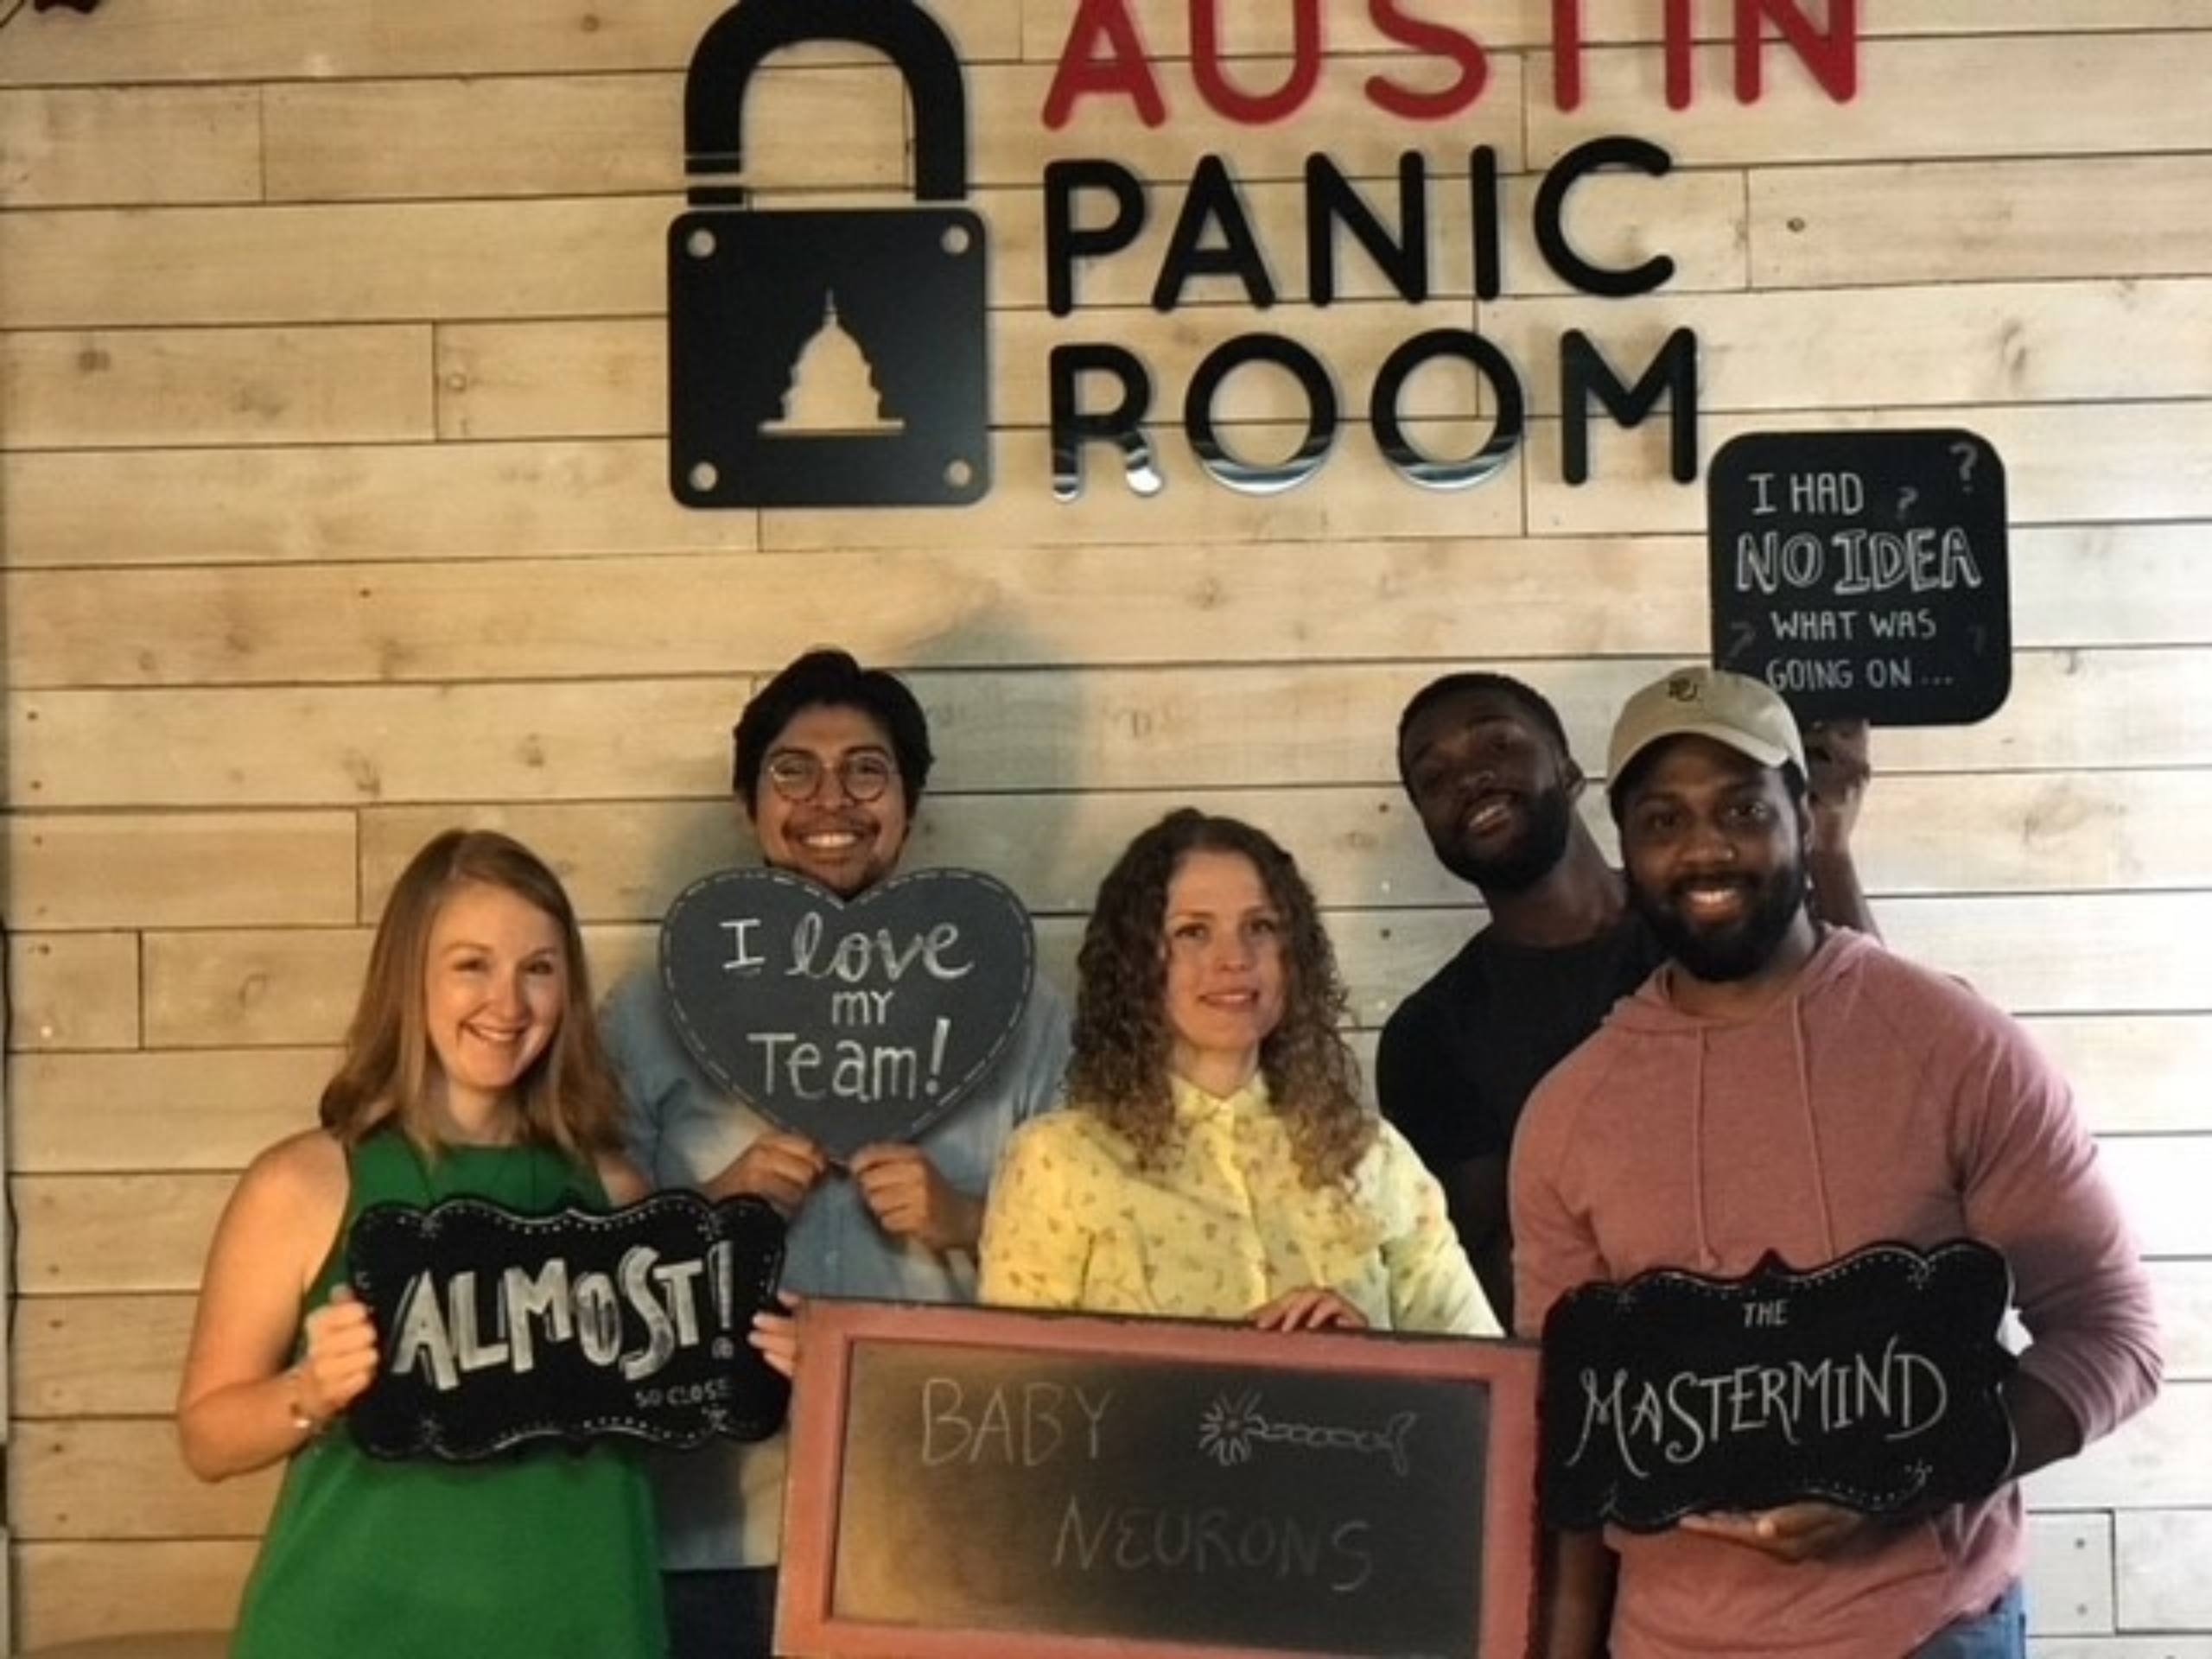 Students at Austin Panic Room.